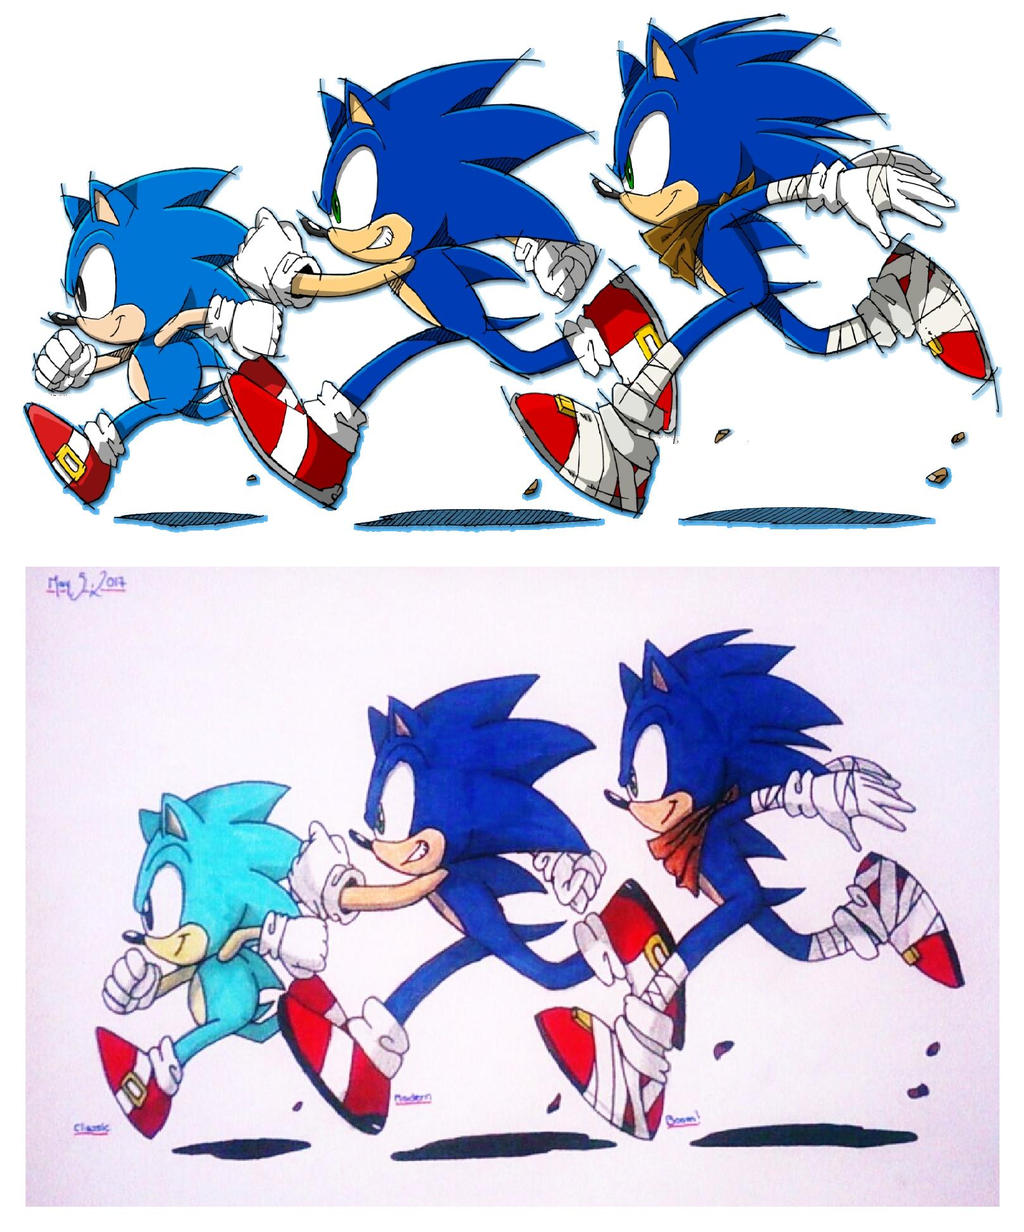 Sonic The Hedgehog Classic Modern And Boom 2 By Shinobiassassin19 On Deviantart